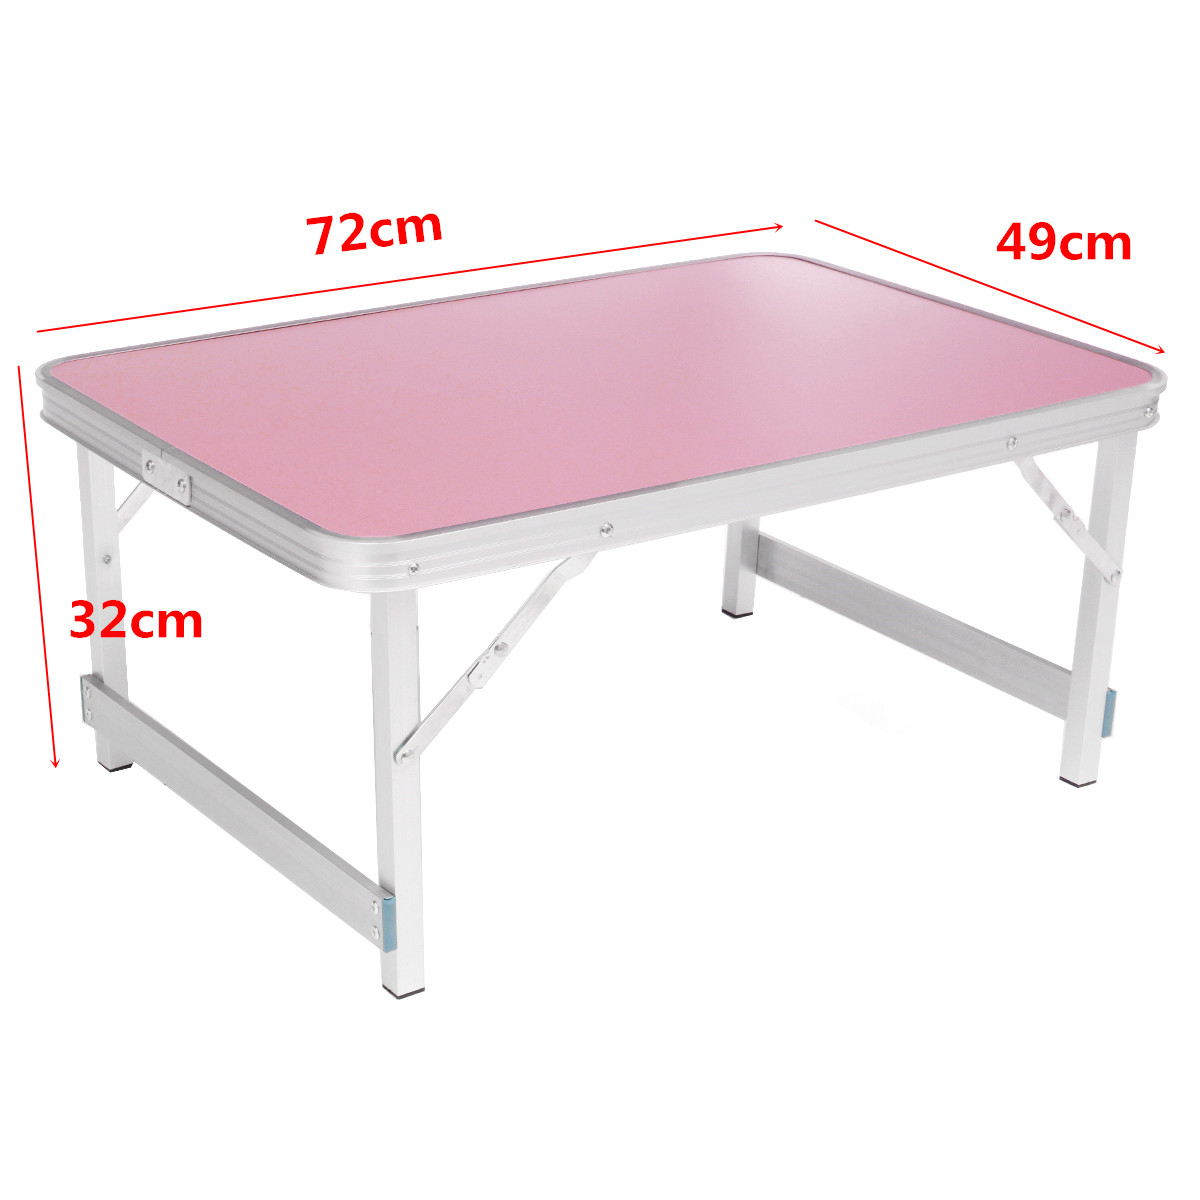 Portable Folding Table Aluminum Alloy Outdoor Camping BBQ Party Dining Picnic Desk